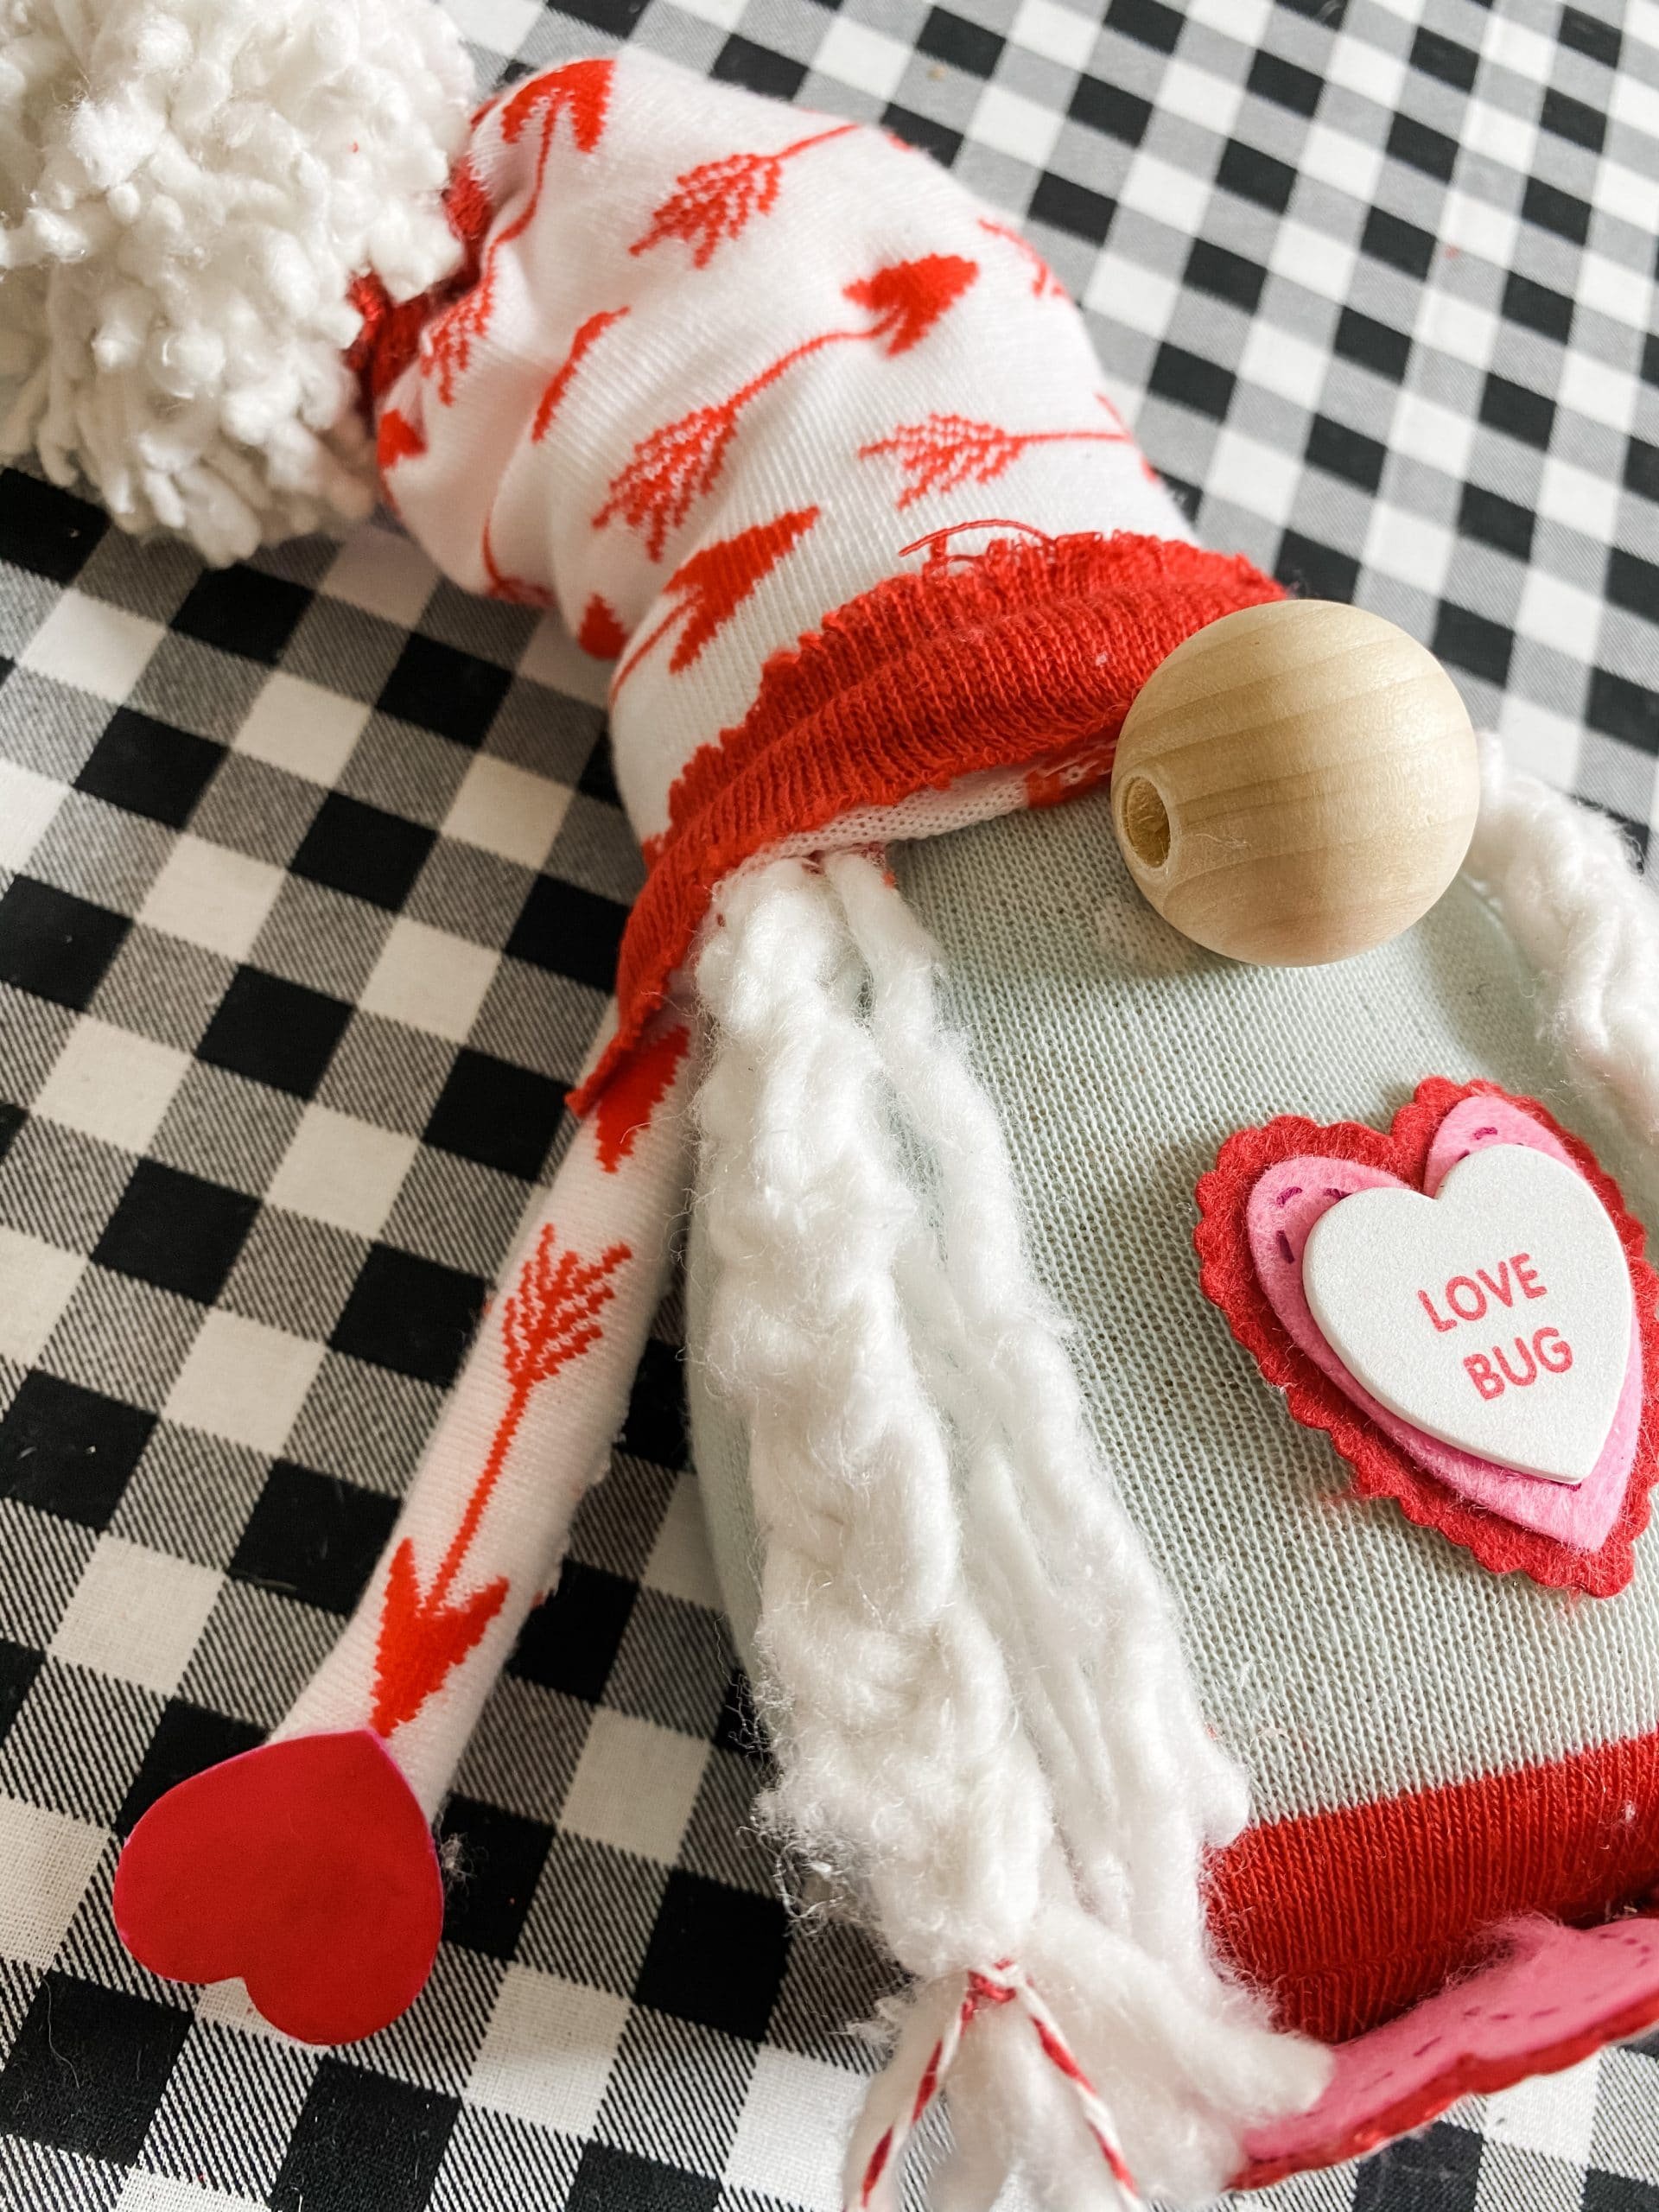 DIY Dollar Tree Mop and Sock Valentine's Day Gnome